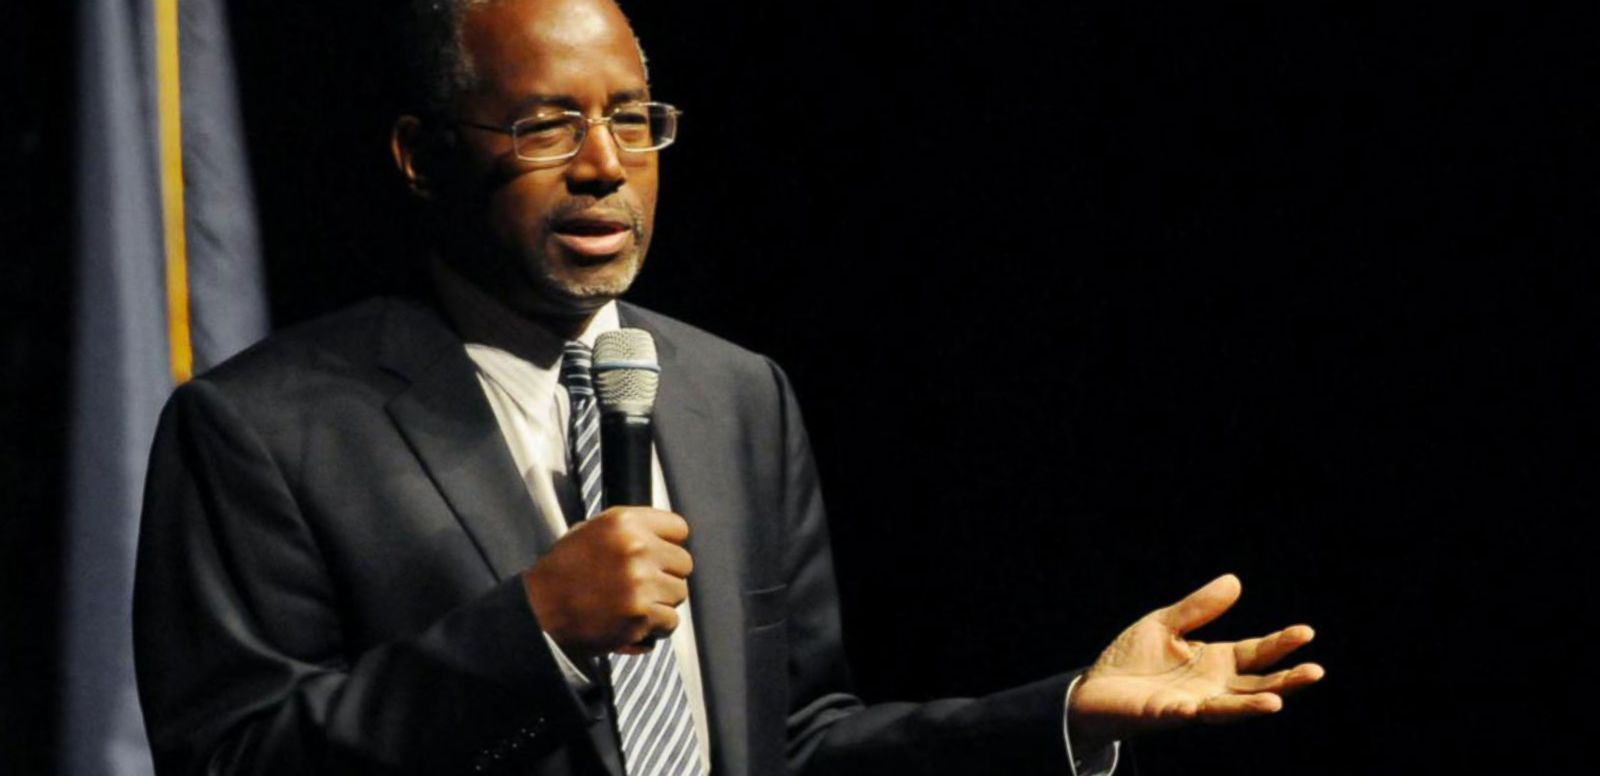 VIDEO: Explaining Dr. Ben Carson's Popularity in Iowa